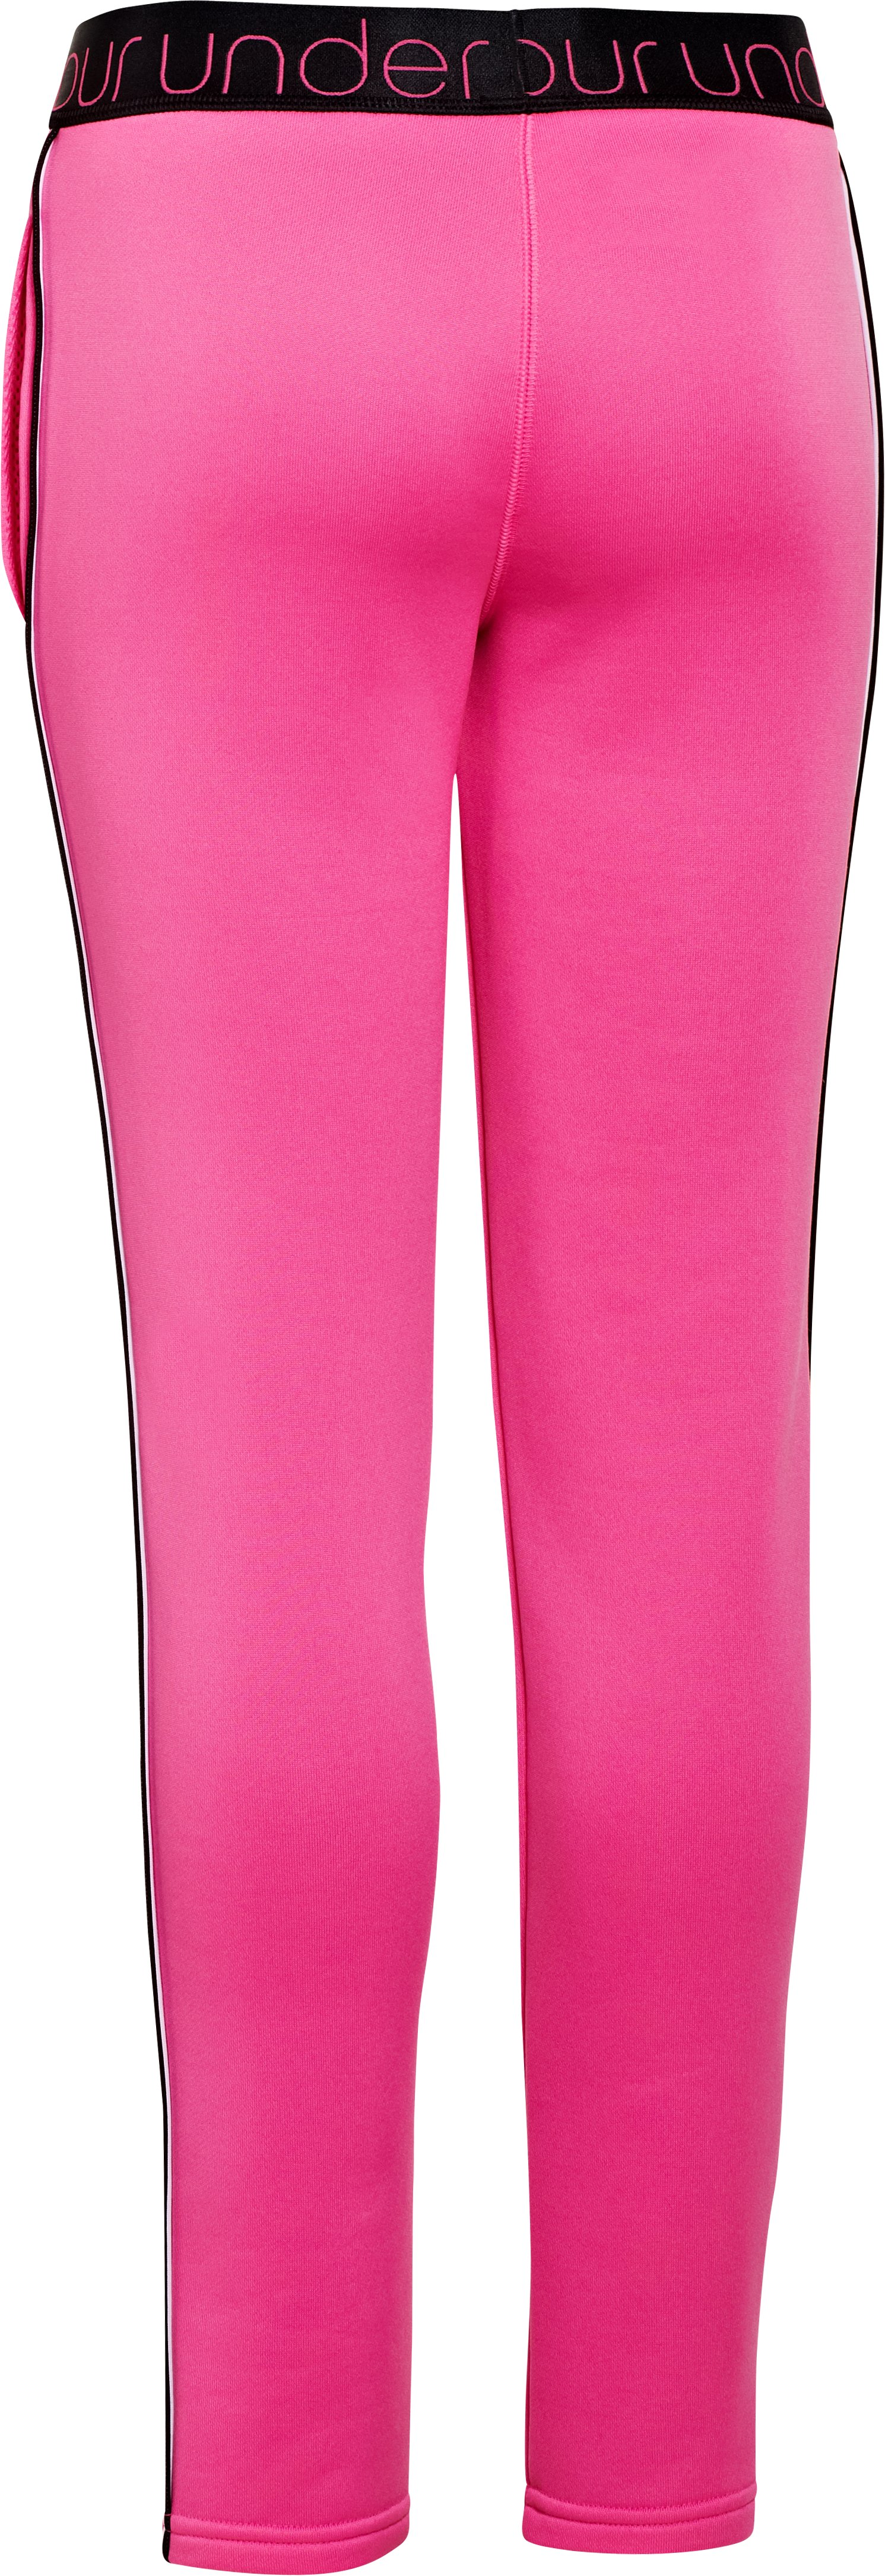 Girls' UA Pronto Pants, CHAOS